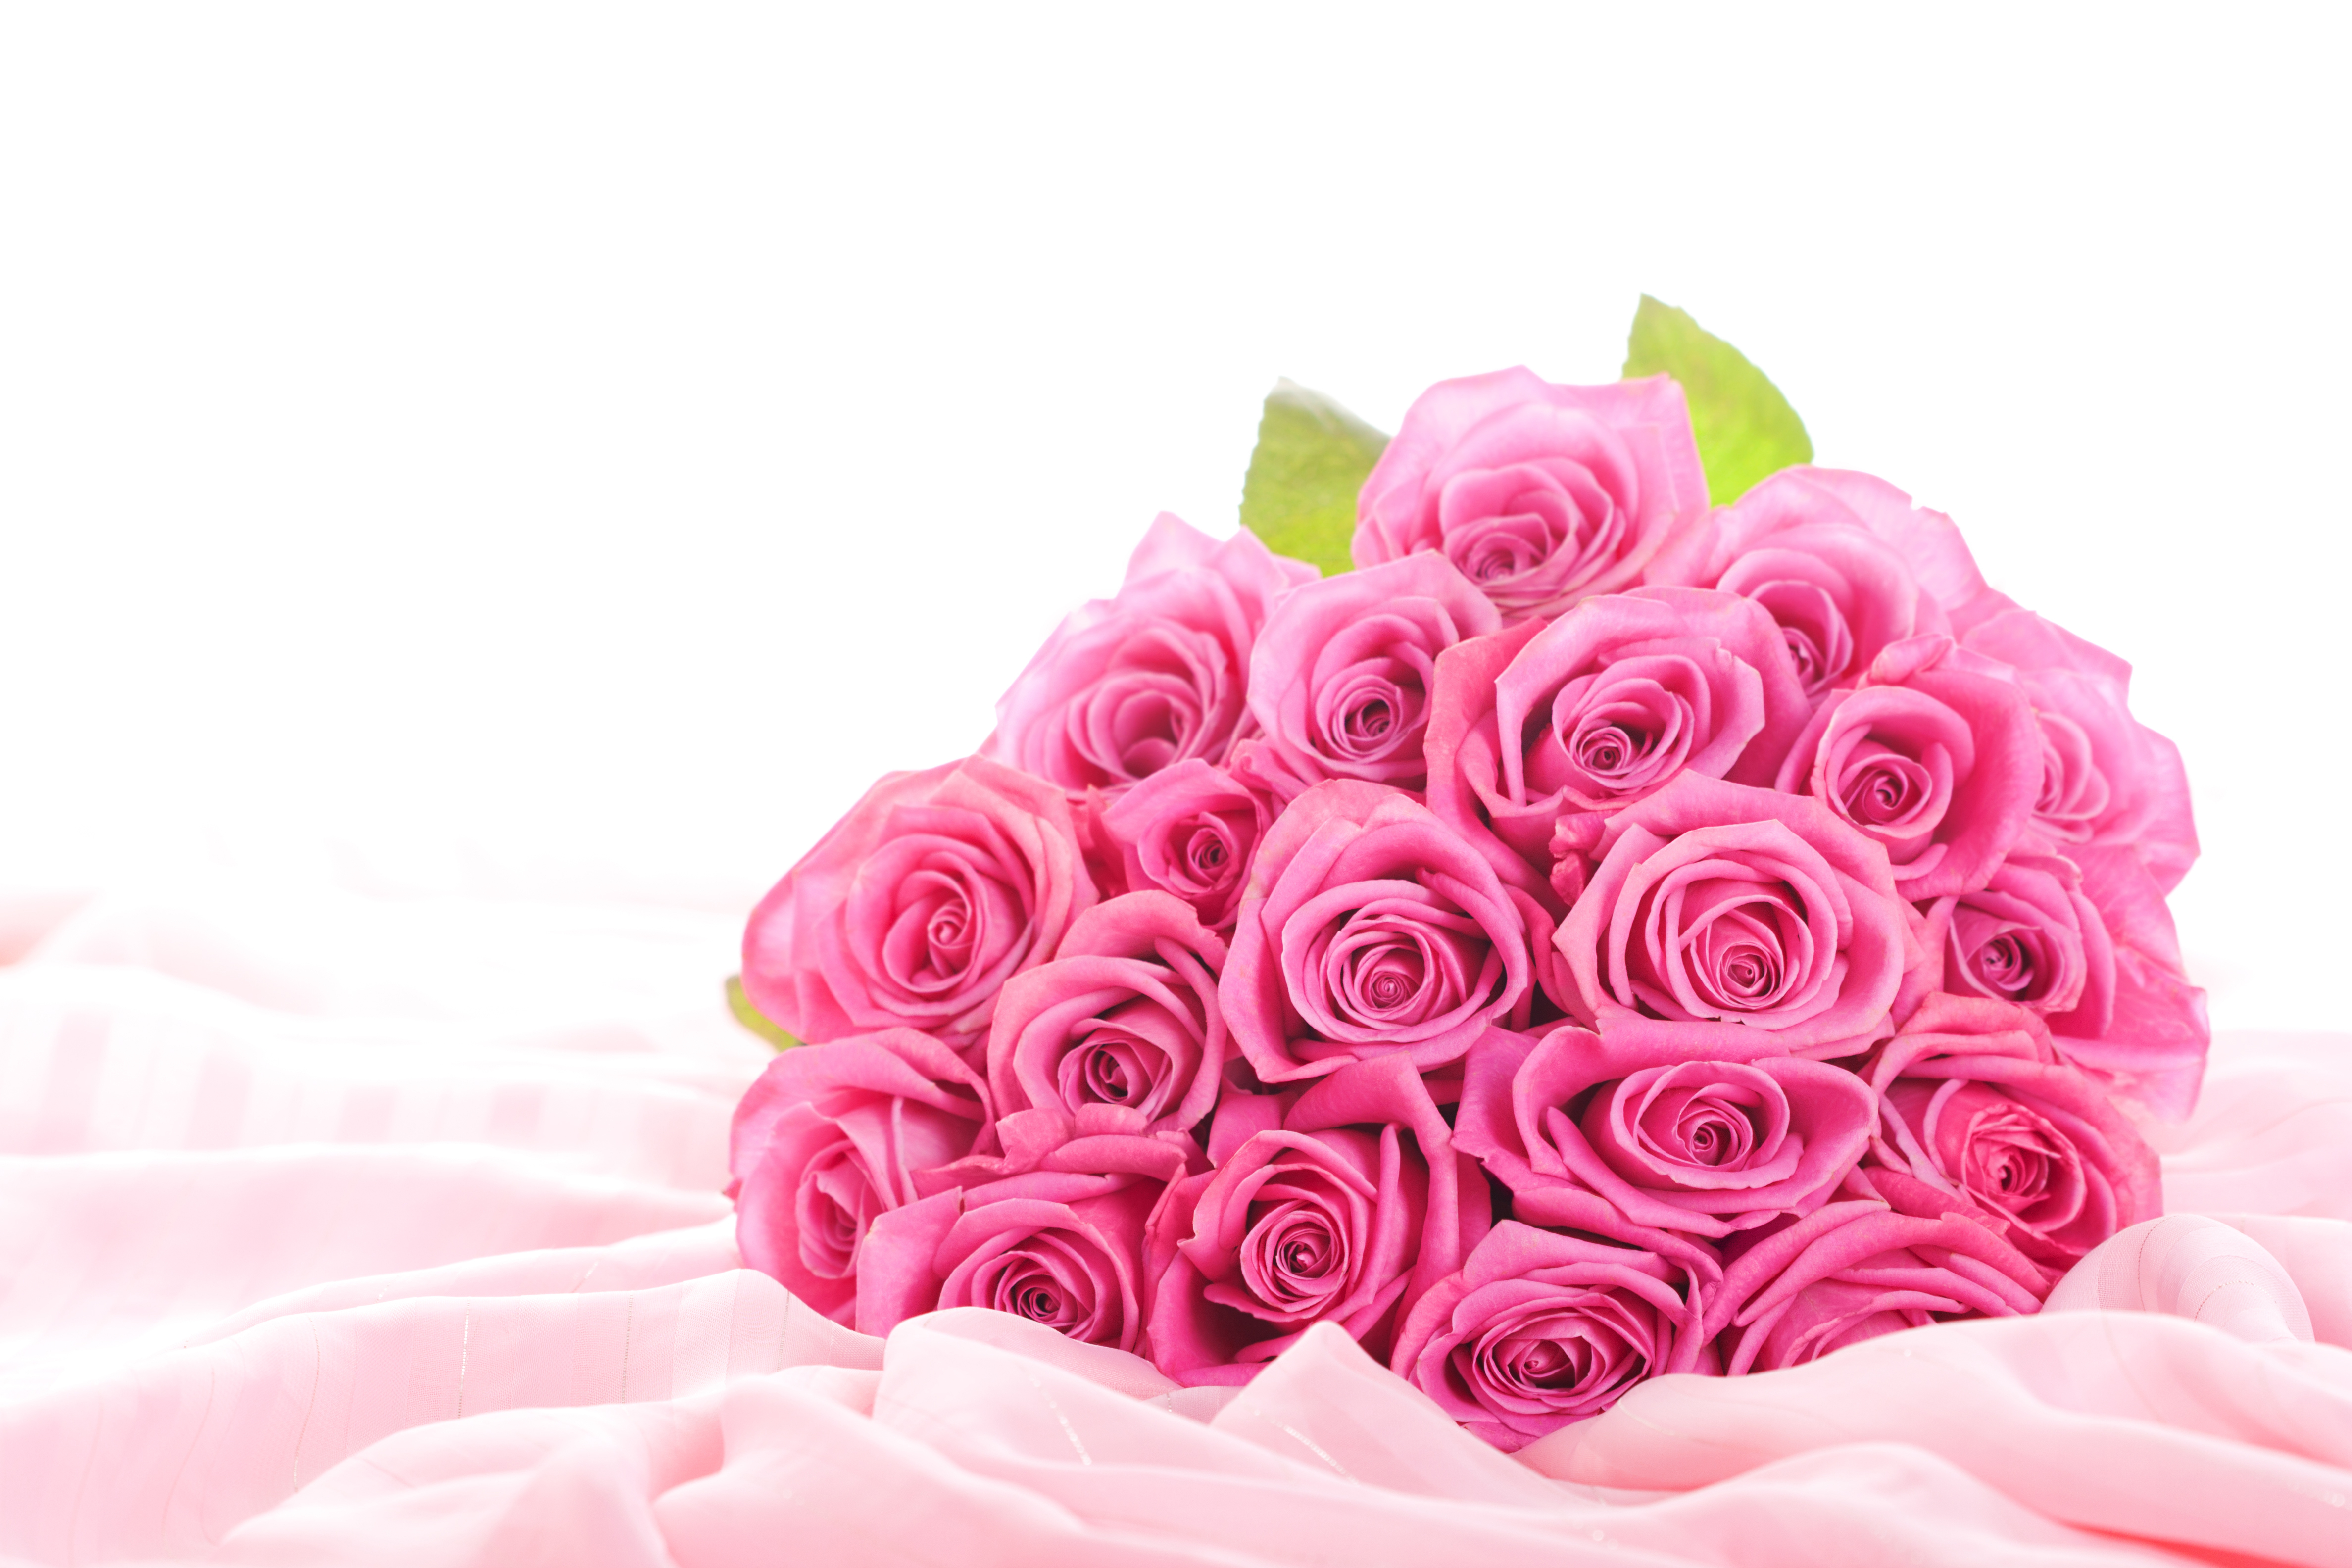 flowers roses pink flowers pink roses bouquet elegant flower buds 4752x3168